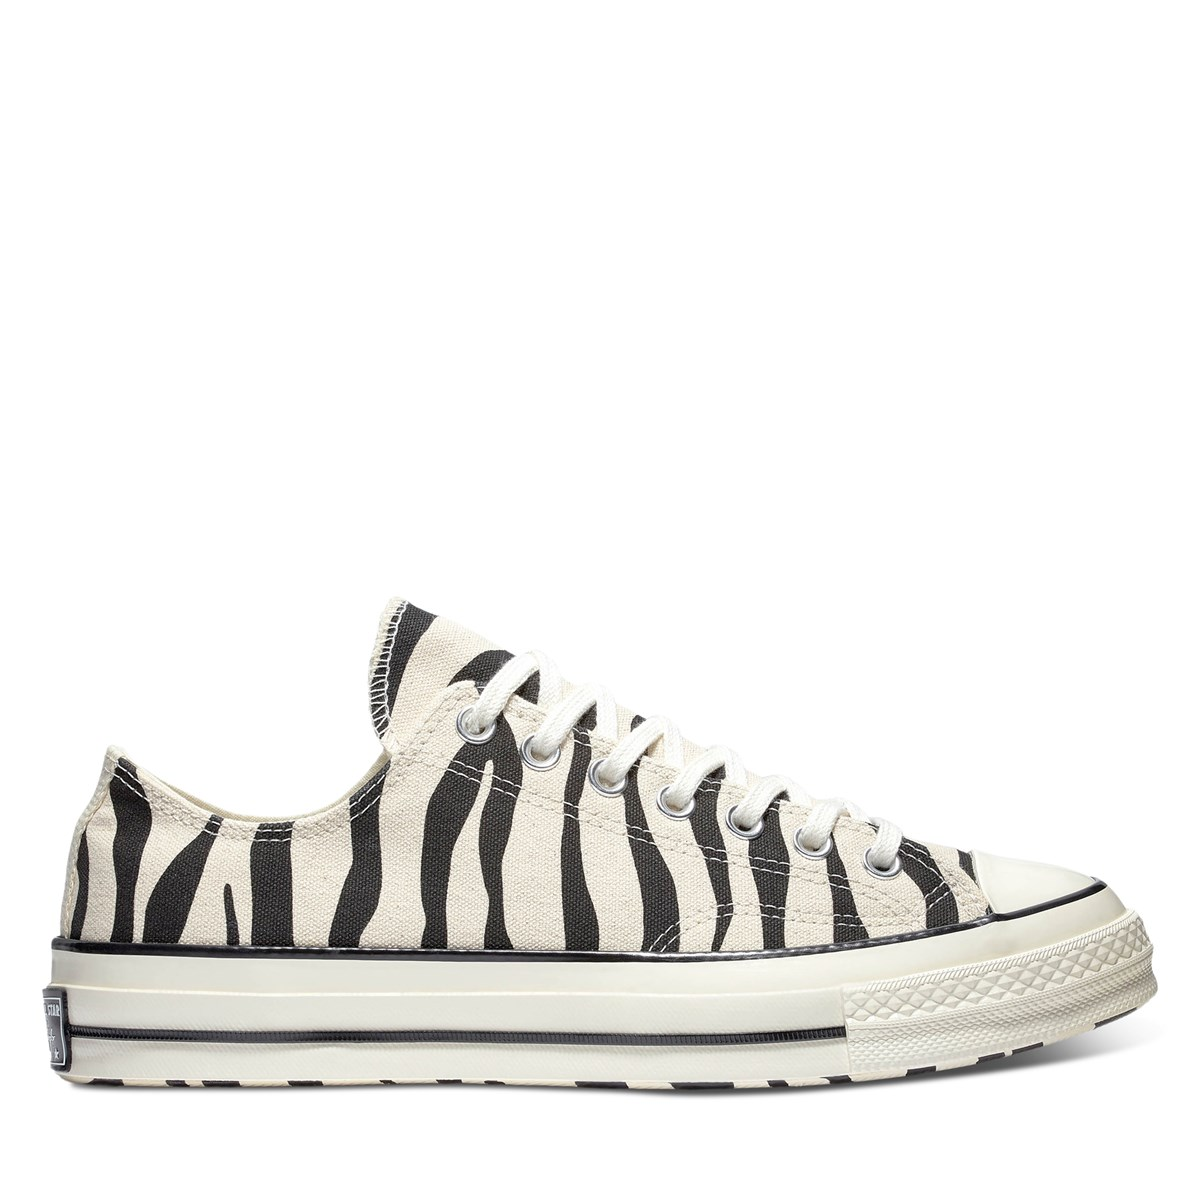 converse-low-gang-chuck70-zebra-print-canvas-shoes-as-low-as-6998-2020-11-22